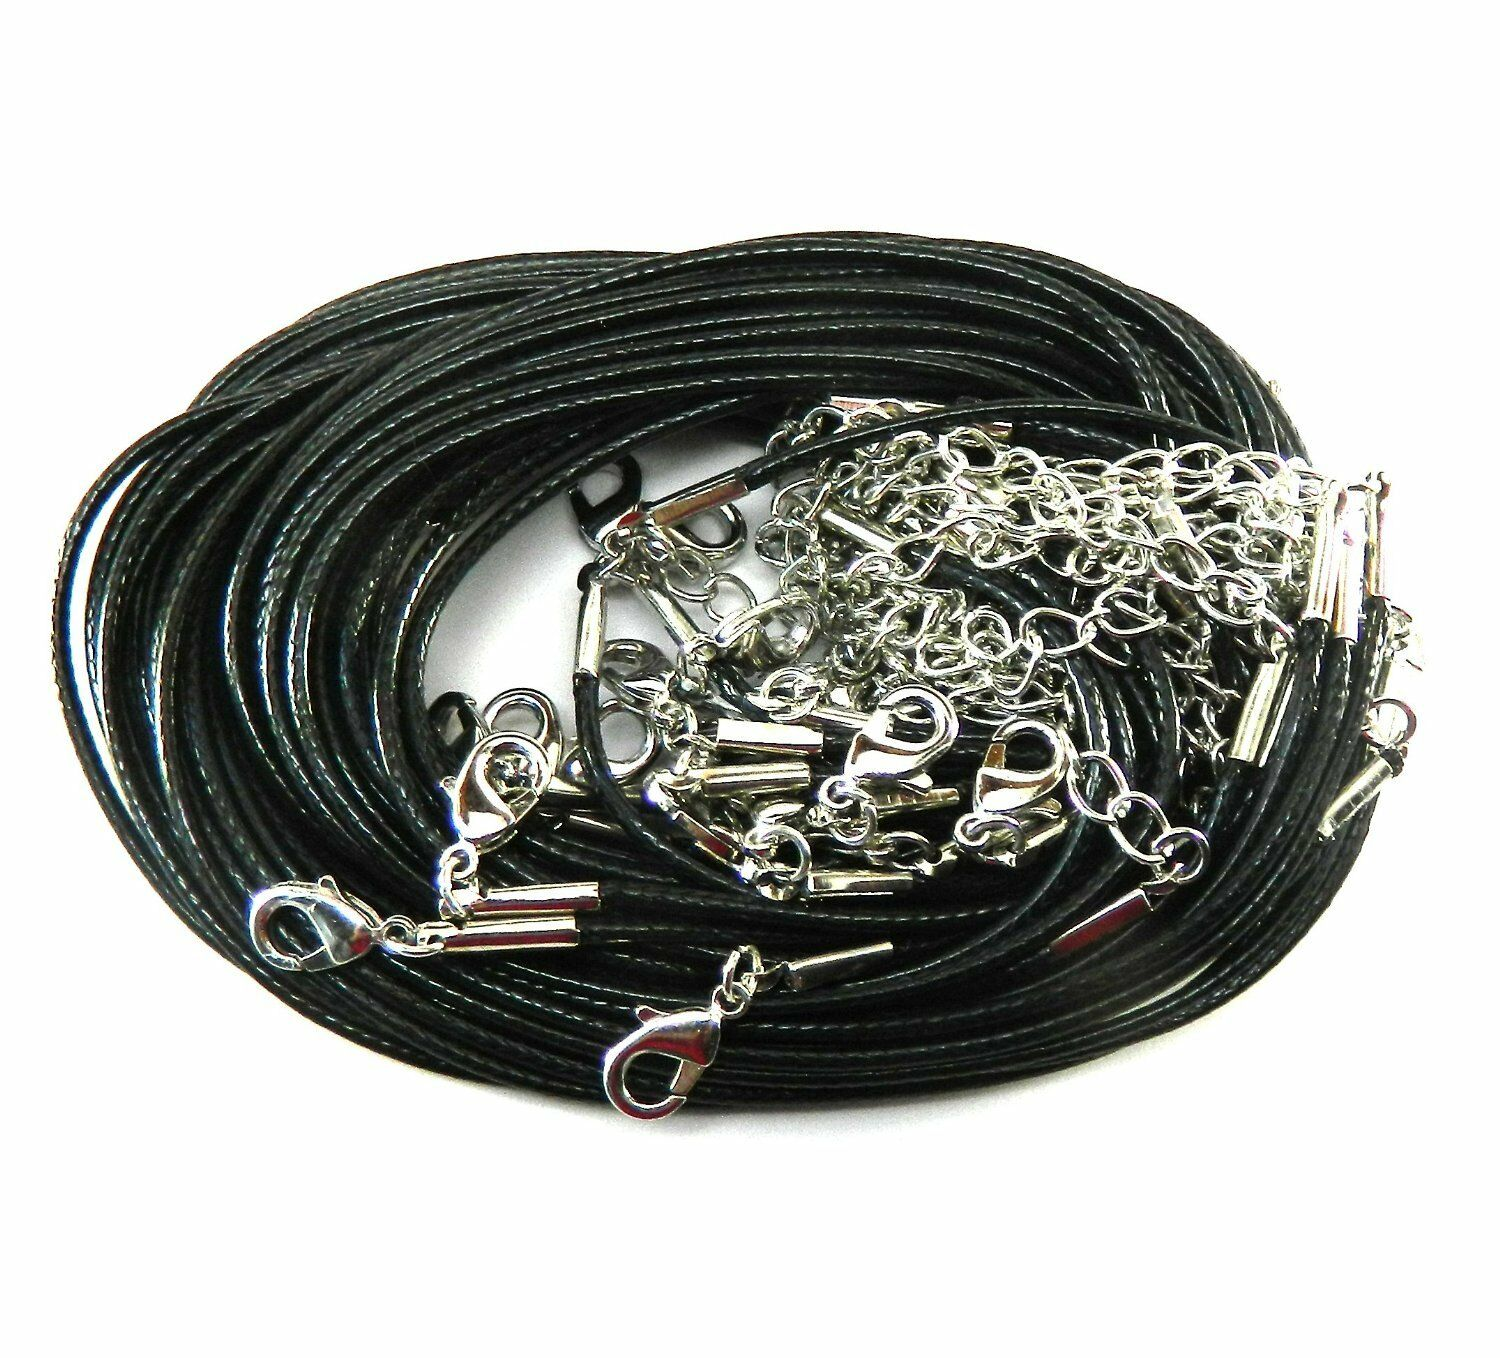 """Rockin Beads 20 Leather Cord Necklaces Black 17/"""" Lobster Claw Clasp Extension"""